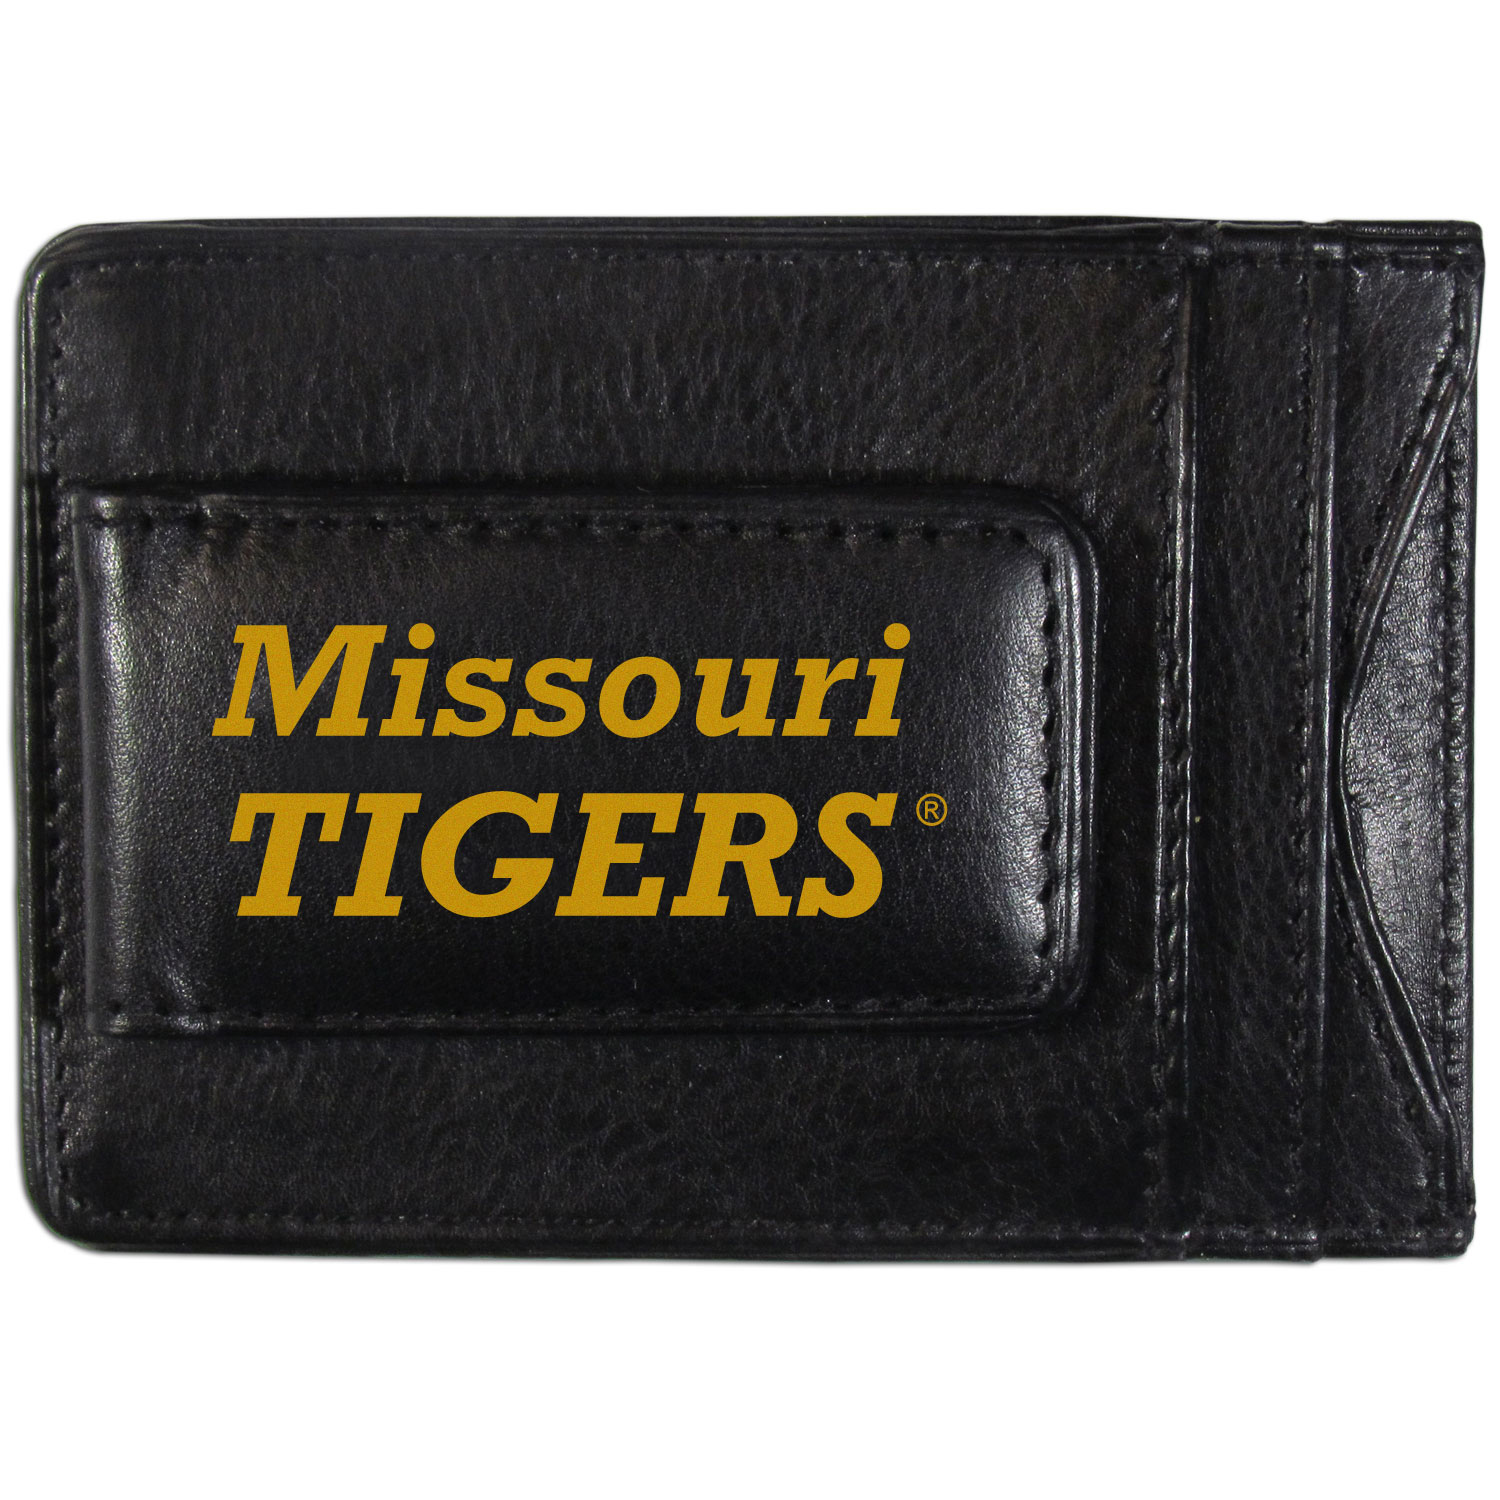 Missouri Tigers Logo Leather Cash and Cardholder - This super slim leather wallet lets you have all the benefits of a money clip while keeping the organization of a wallet. On one side of this front pocket wallet there is a strong, magnetic money clip to keep your cash easily accessible and the?Missouri Tigers team logo on the front. The versatile men's accessory is a perfect addition to your fan apparel.